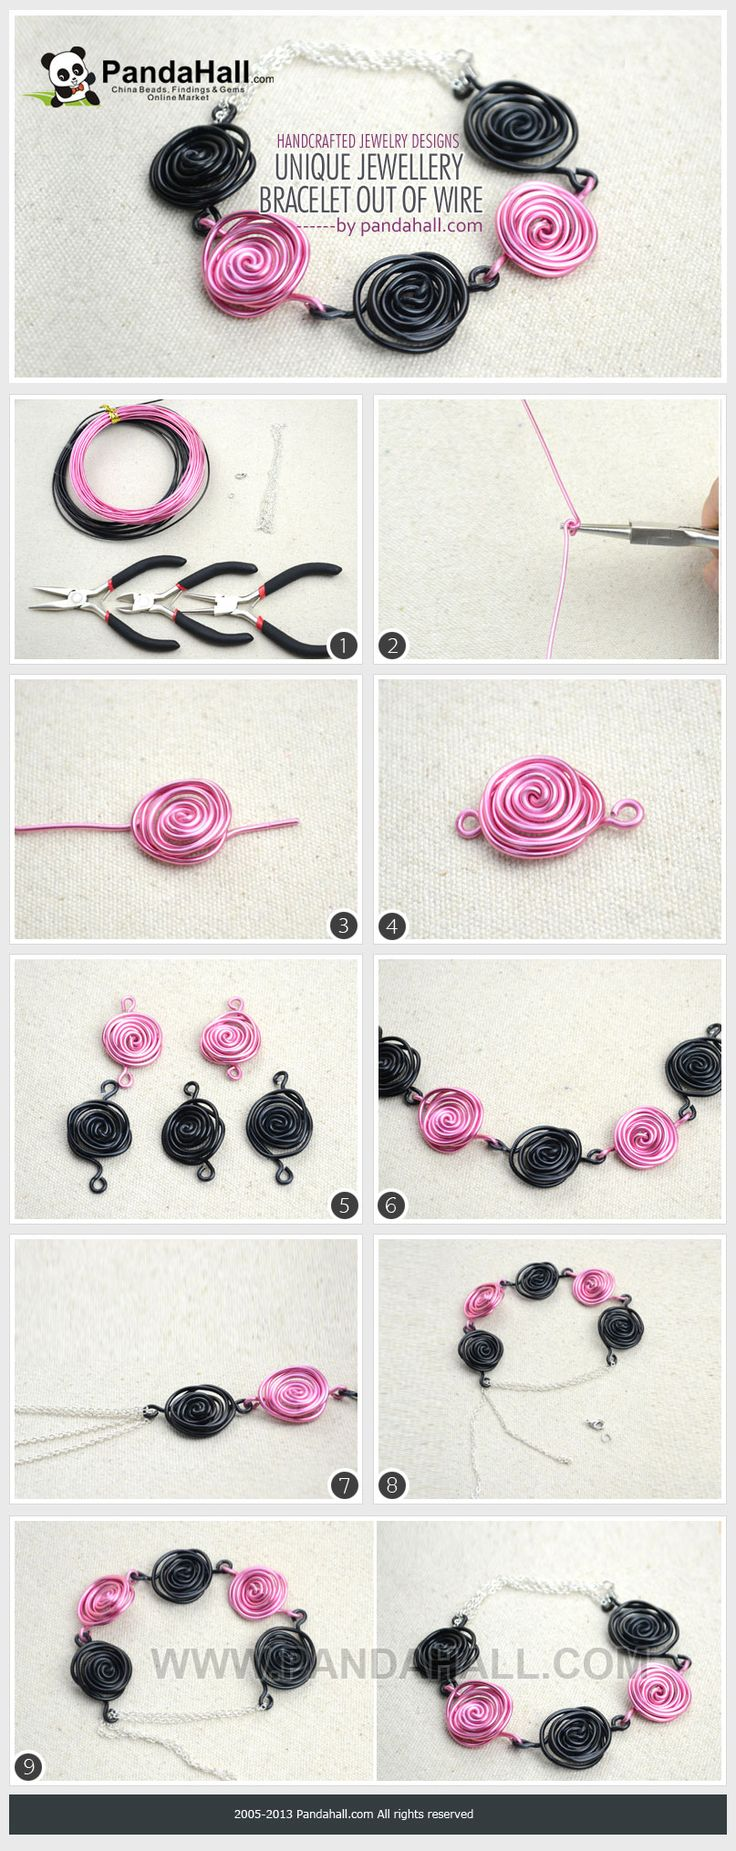 Using simple techniques, plain aluminum wire can easily be made into a unique jewellery bracelet that is decorated with delicate roses. It is a fairly pretty piece among the masses of handcrafted jewelry designs.